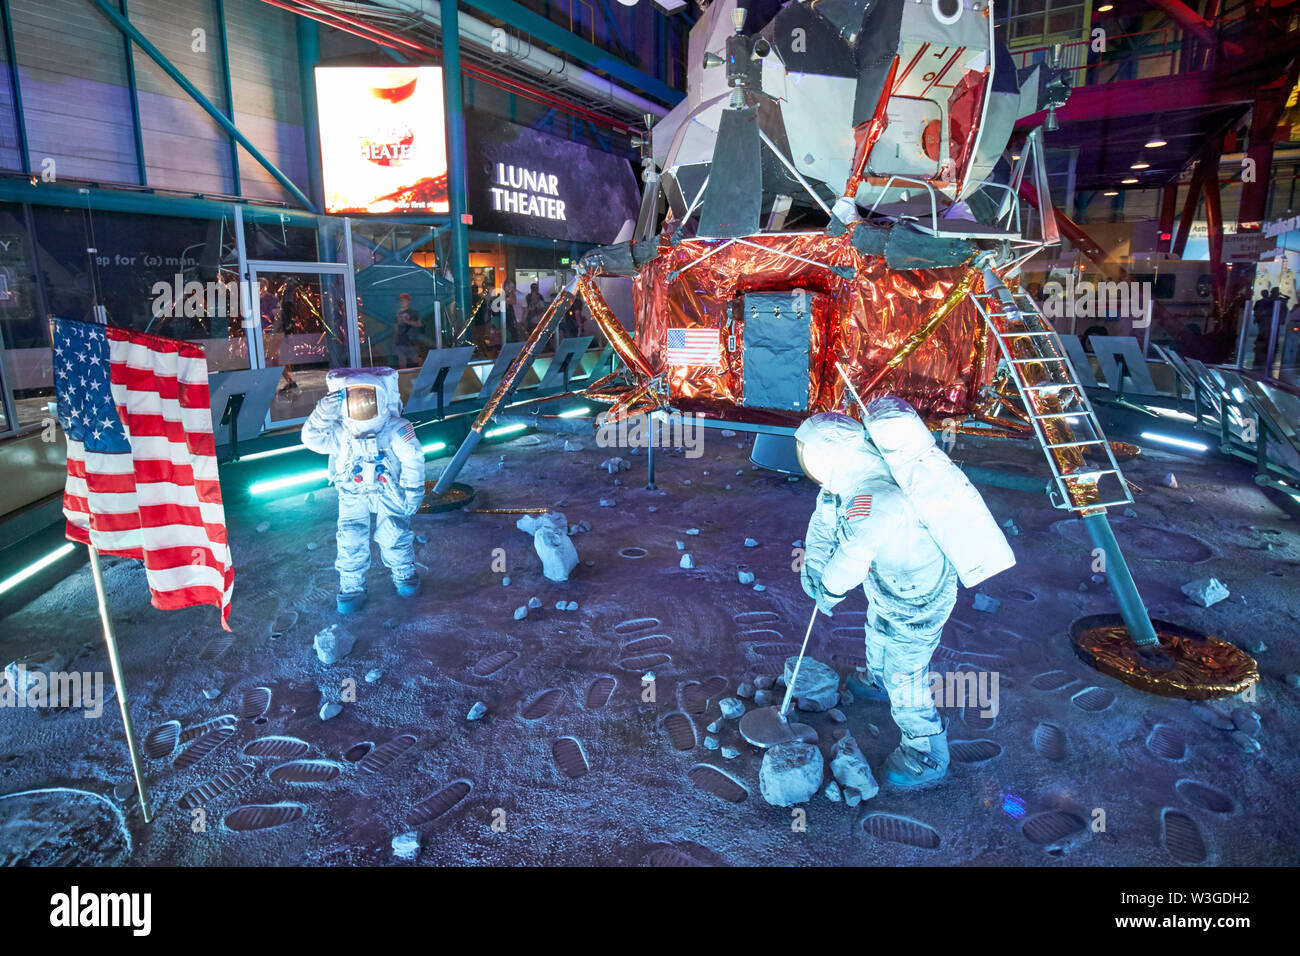 Apollo 11 moon landing replica in the Apollo/Saturn 5 center Kennedy Space Center Florida USA on the week of the 50th anniversary of the moon landings - Stock Image